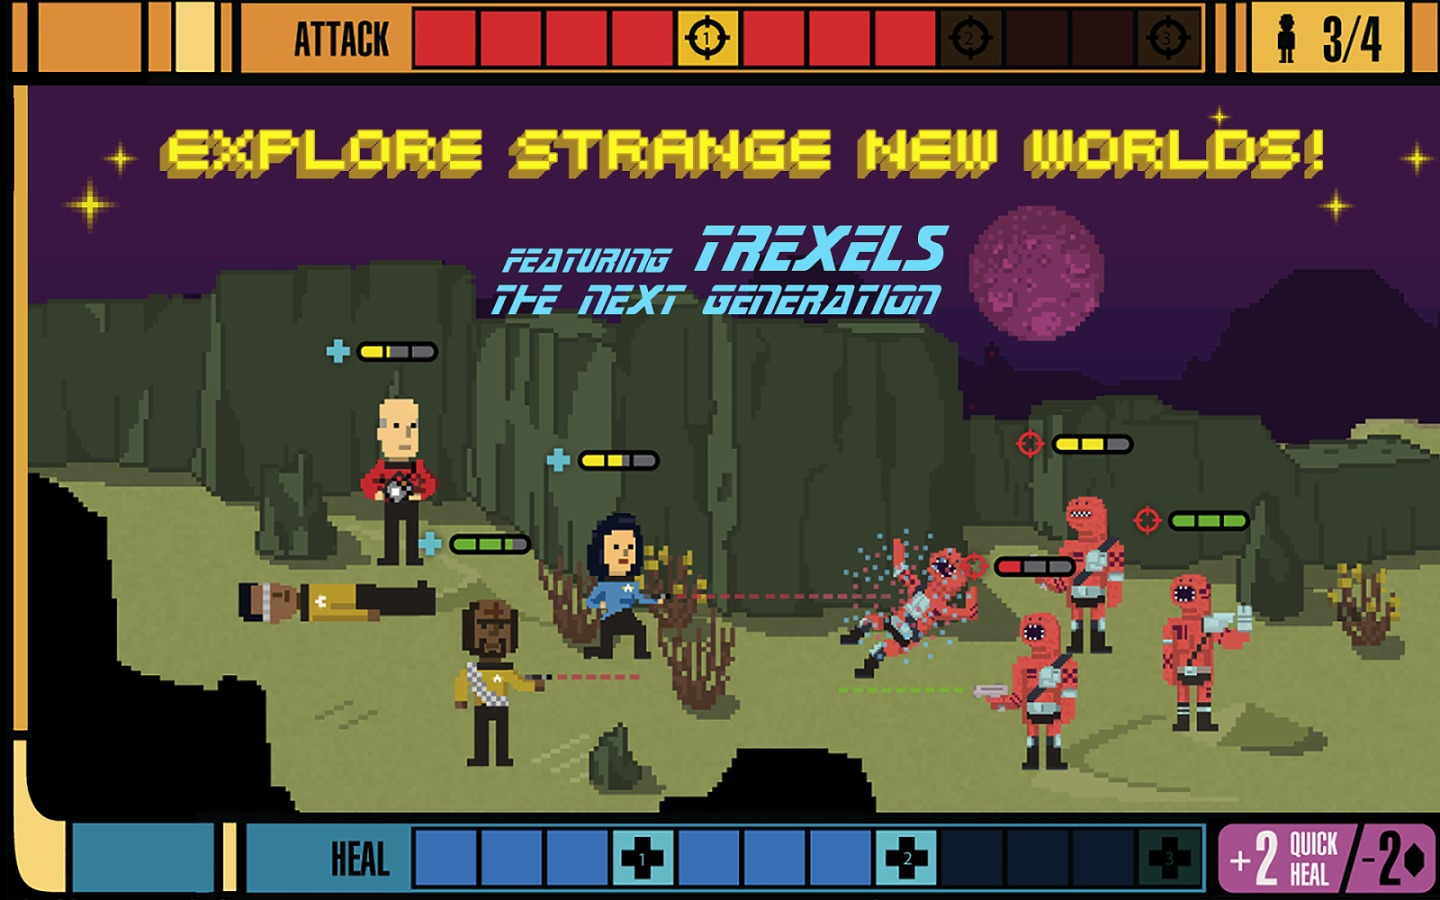 Star Trek Trexels For Android Now Live On Google Play Store